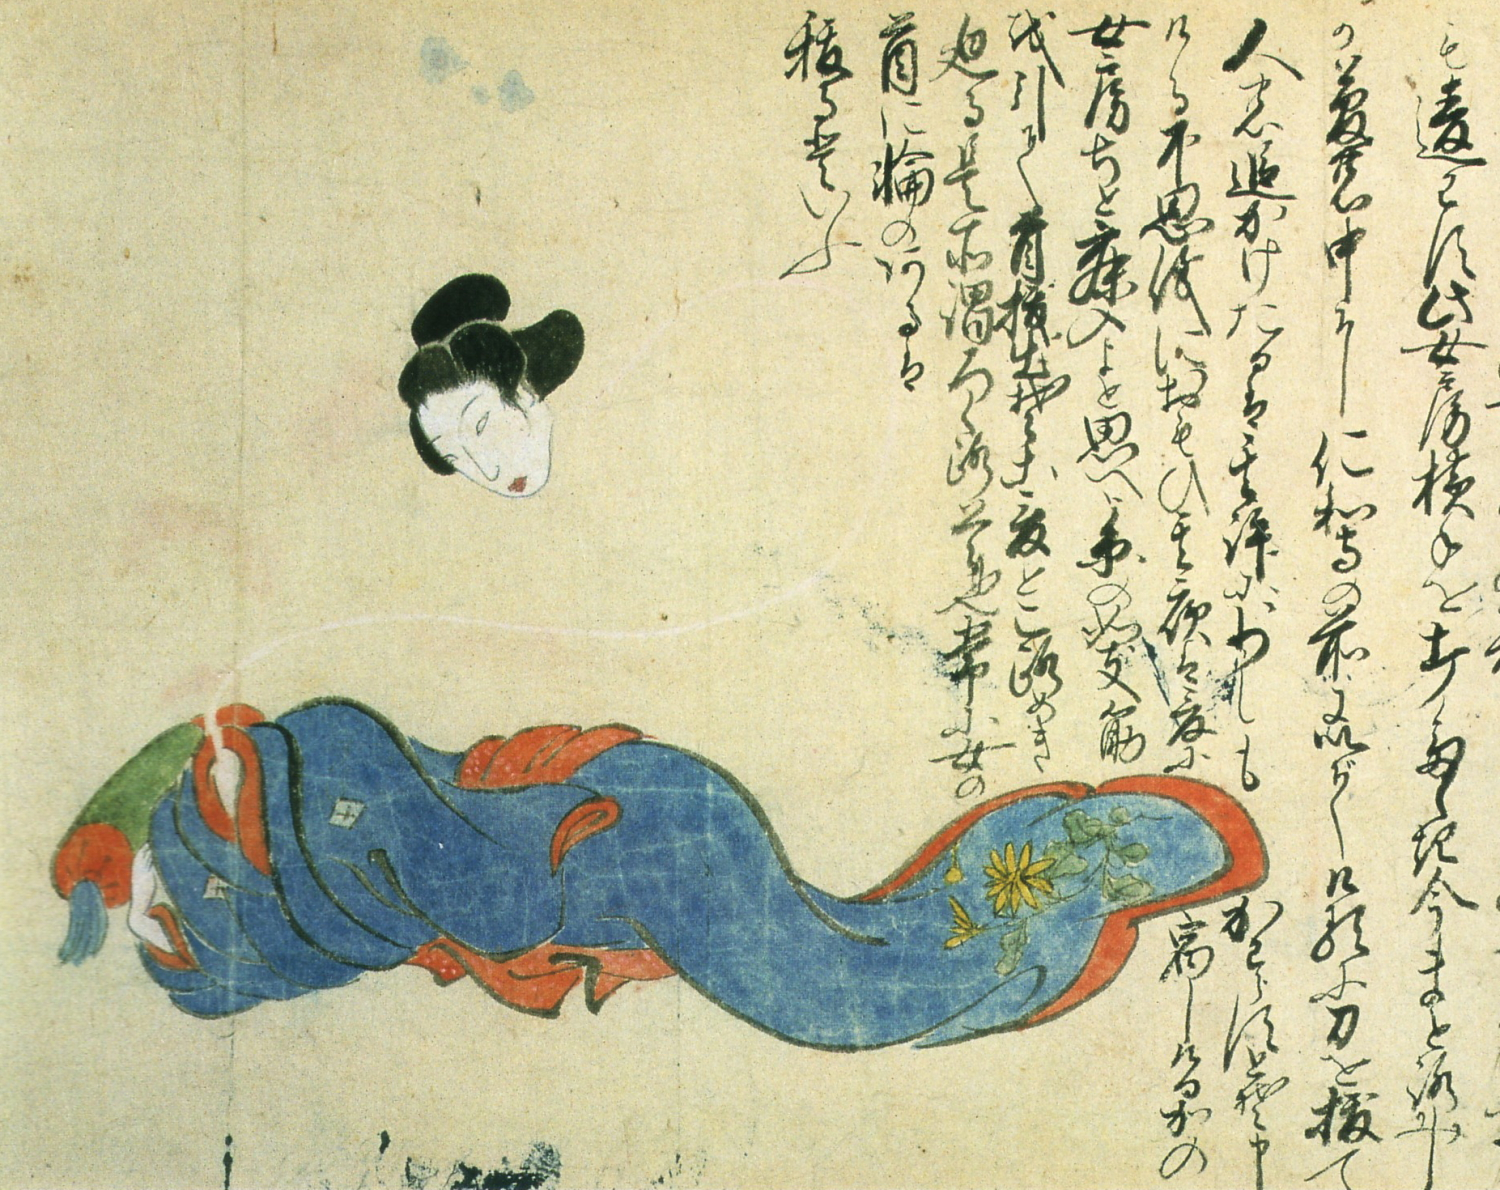 Yōkai Supernatural Japanese Monster Art